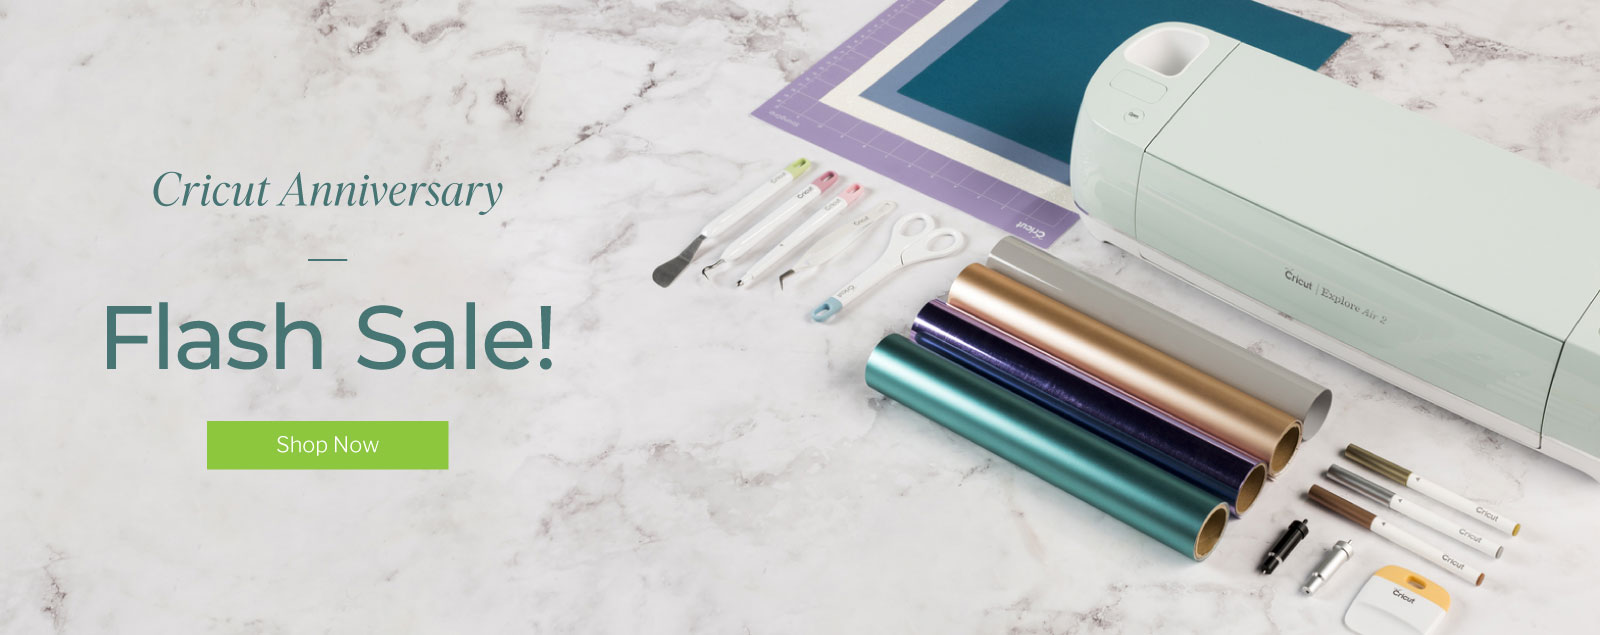 Cricut Anniversary - Flash Sale!